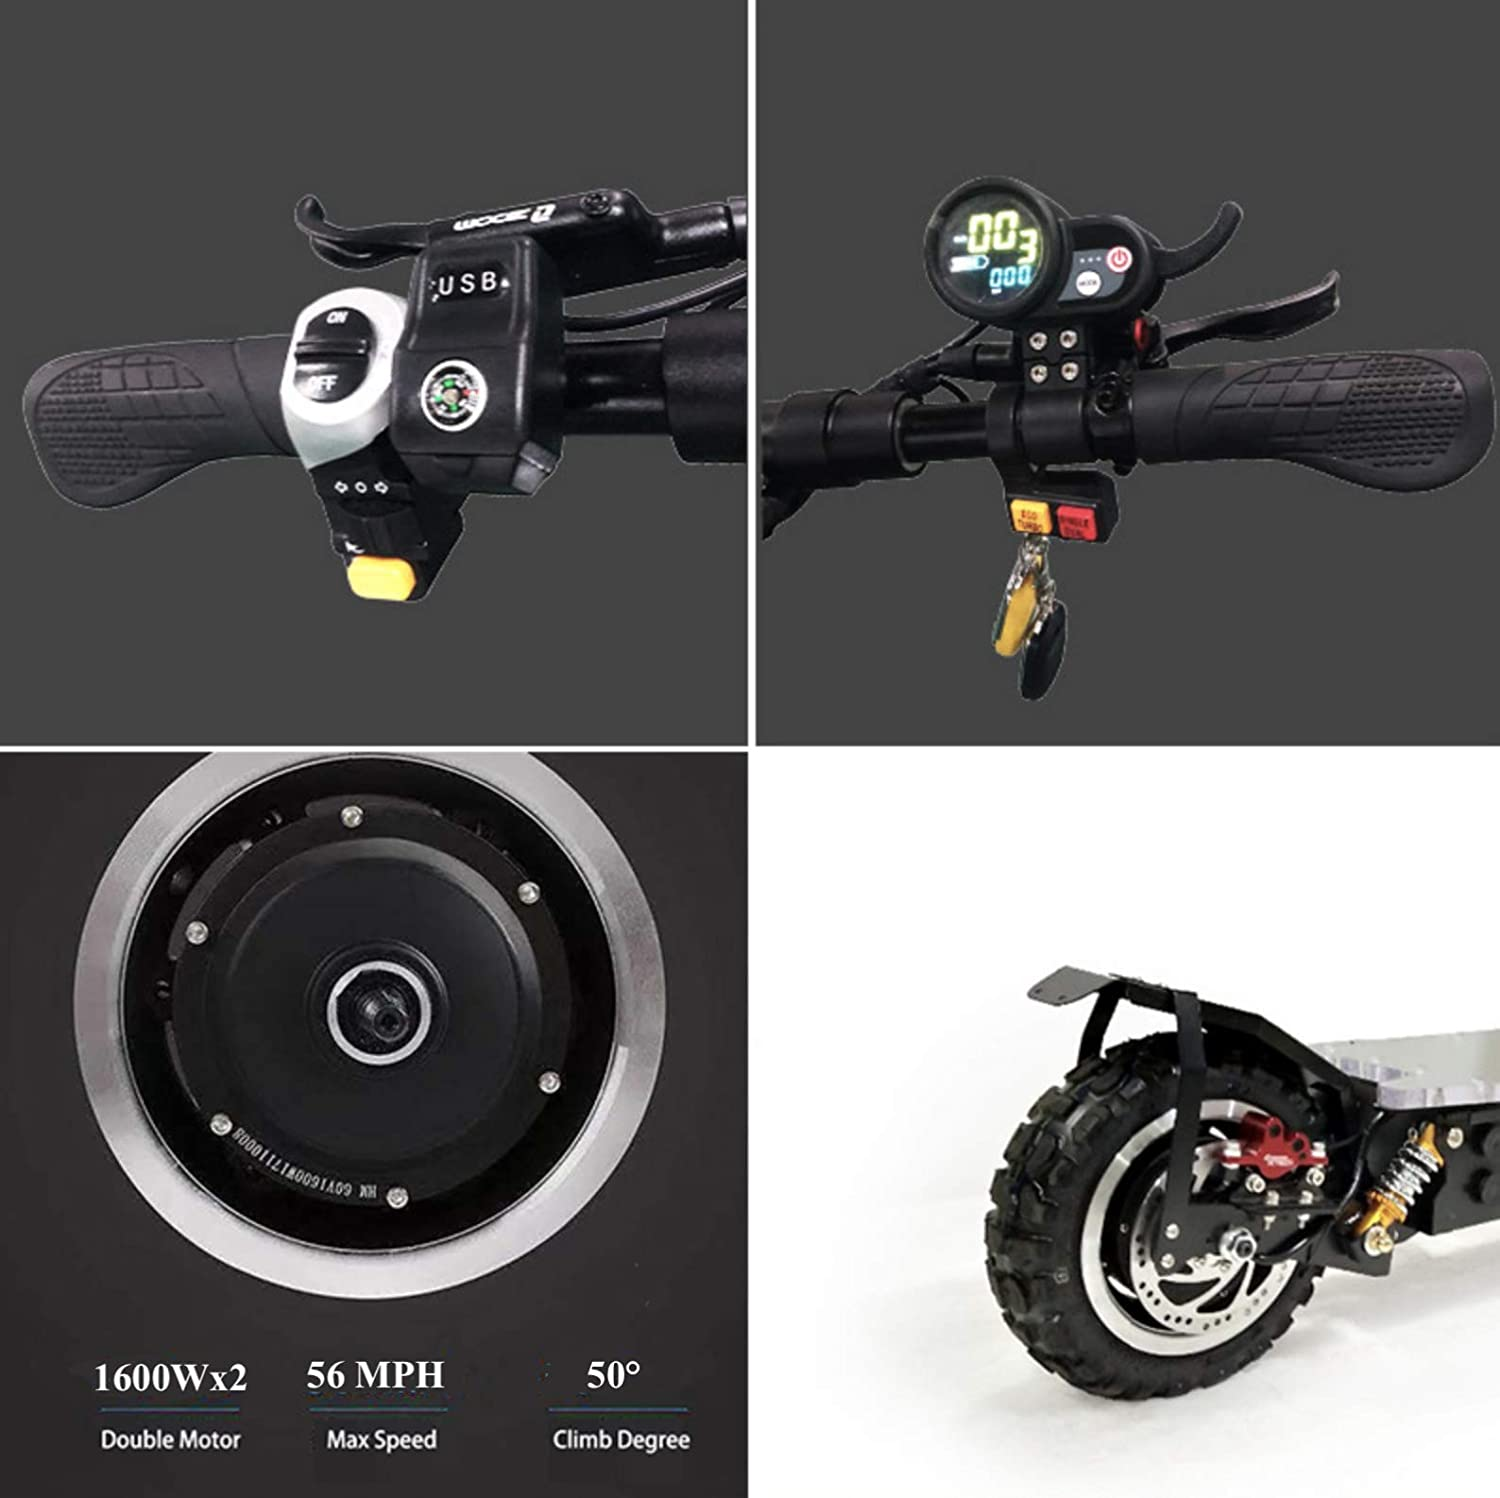 OUTSTORM 56MPH Ultra High Speed Electric Scooter for Adults Foldable, 3200W Peak Power Dual Motor| 60V / 20-35Ah Battery | 43-67 Miles Distance | ...